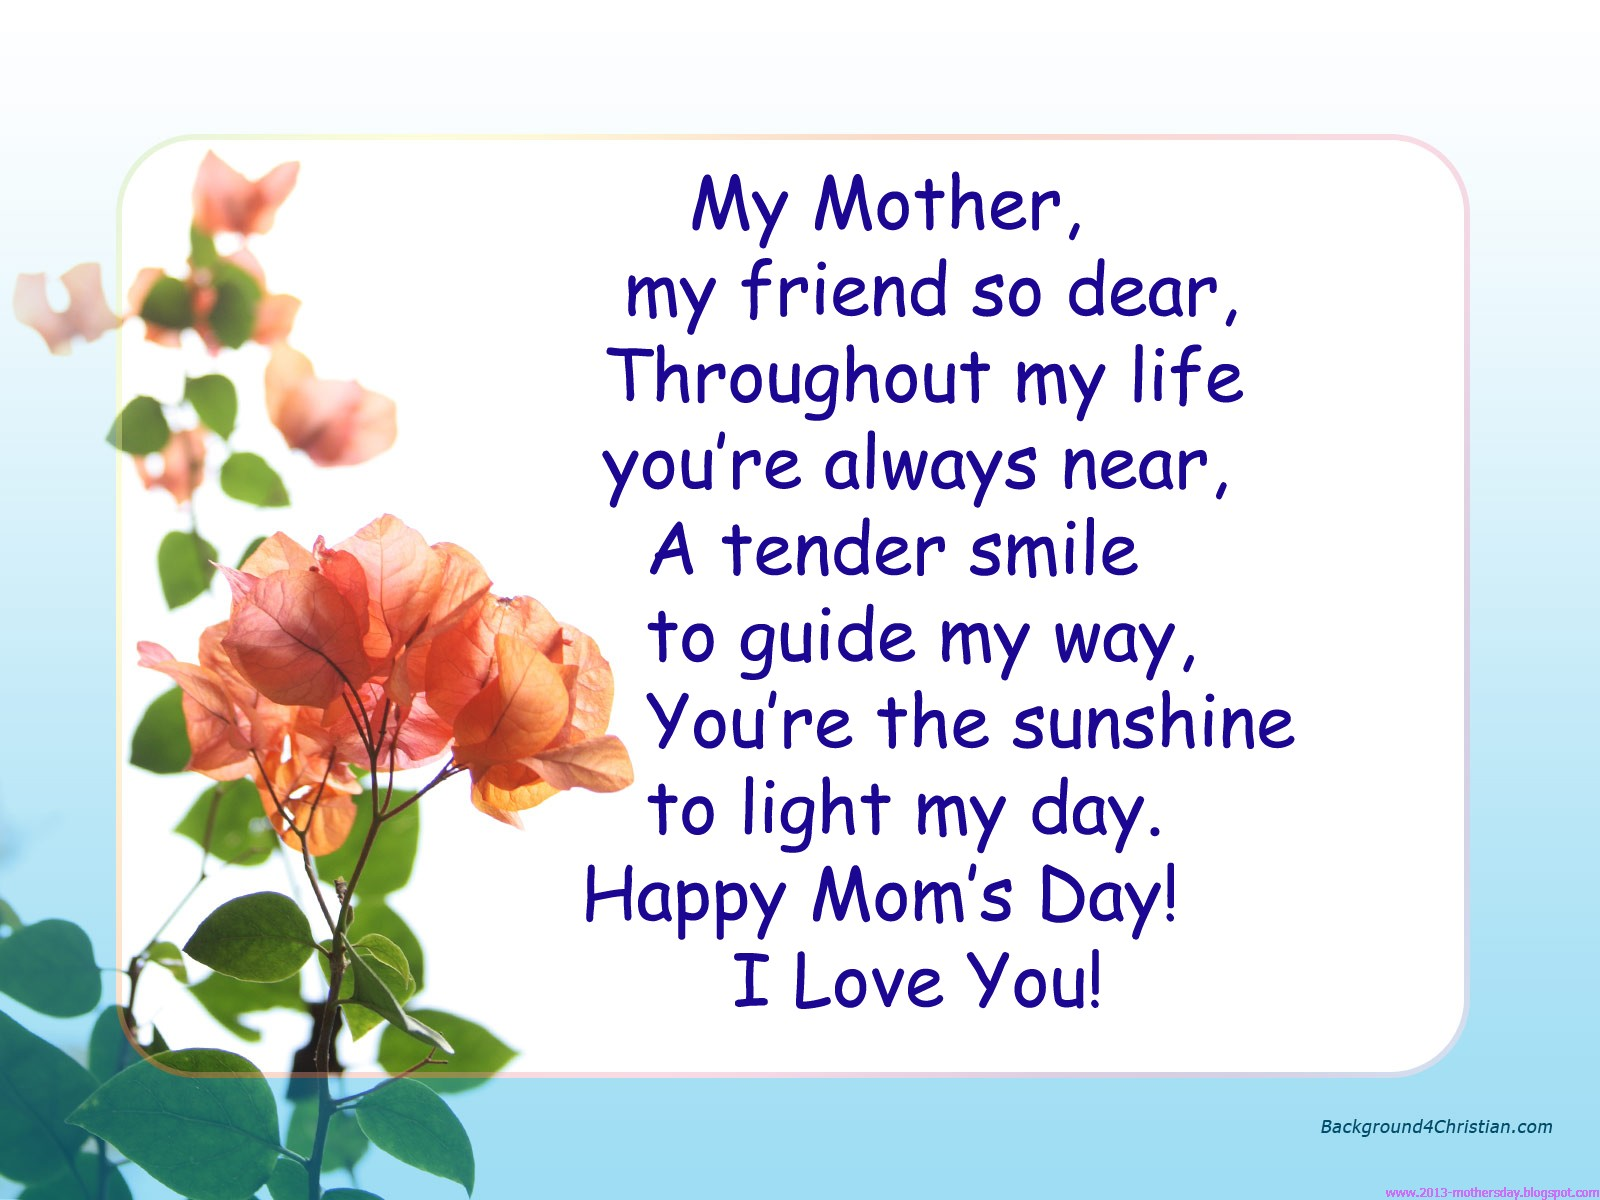 Good Mother`s Day Quotes - fybamuno89 over-blog com